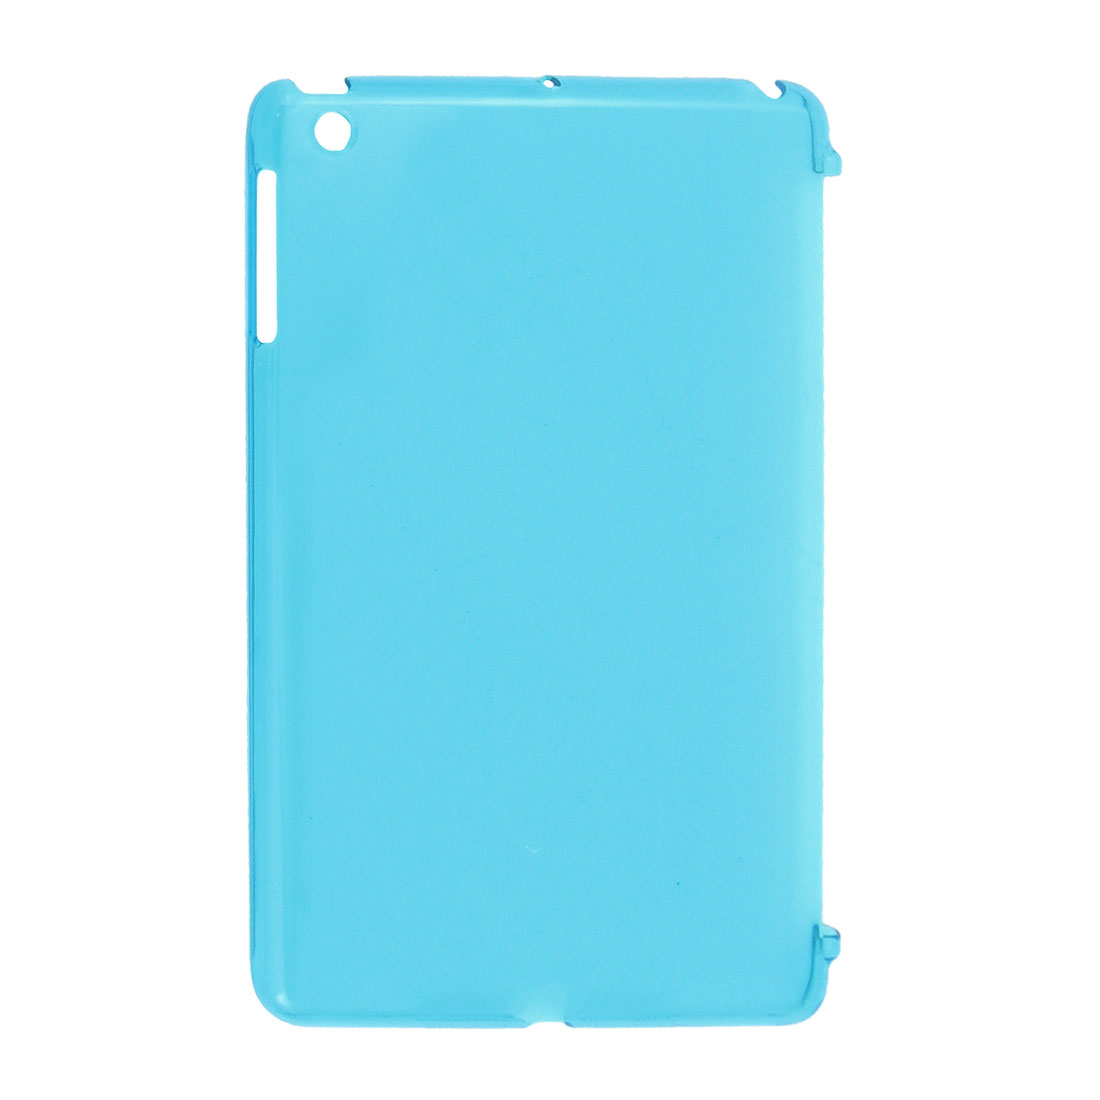 """20cm x 13cm x 1cm Clear Blue Protective Back Cover Case for 7"""" Tablet PC"""